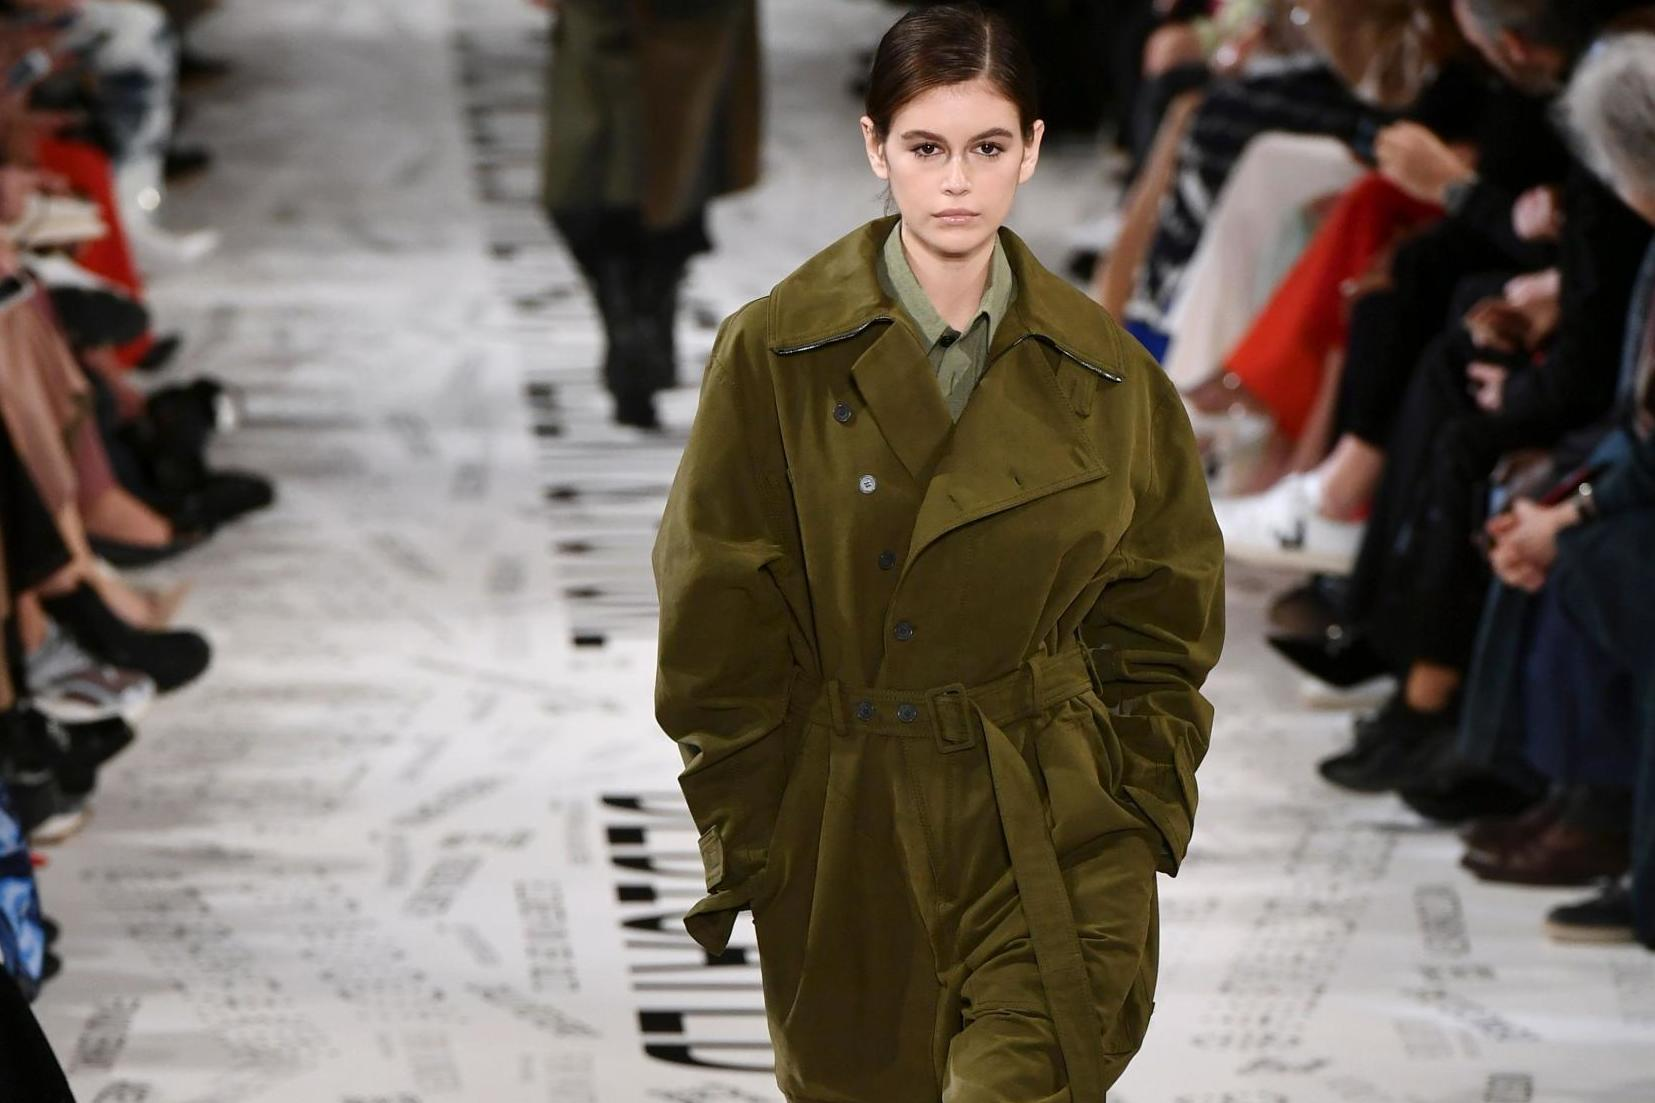 Stella McCartney show featured 'upcycled' clothes during Paris Fashion Week